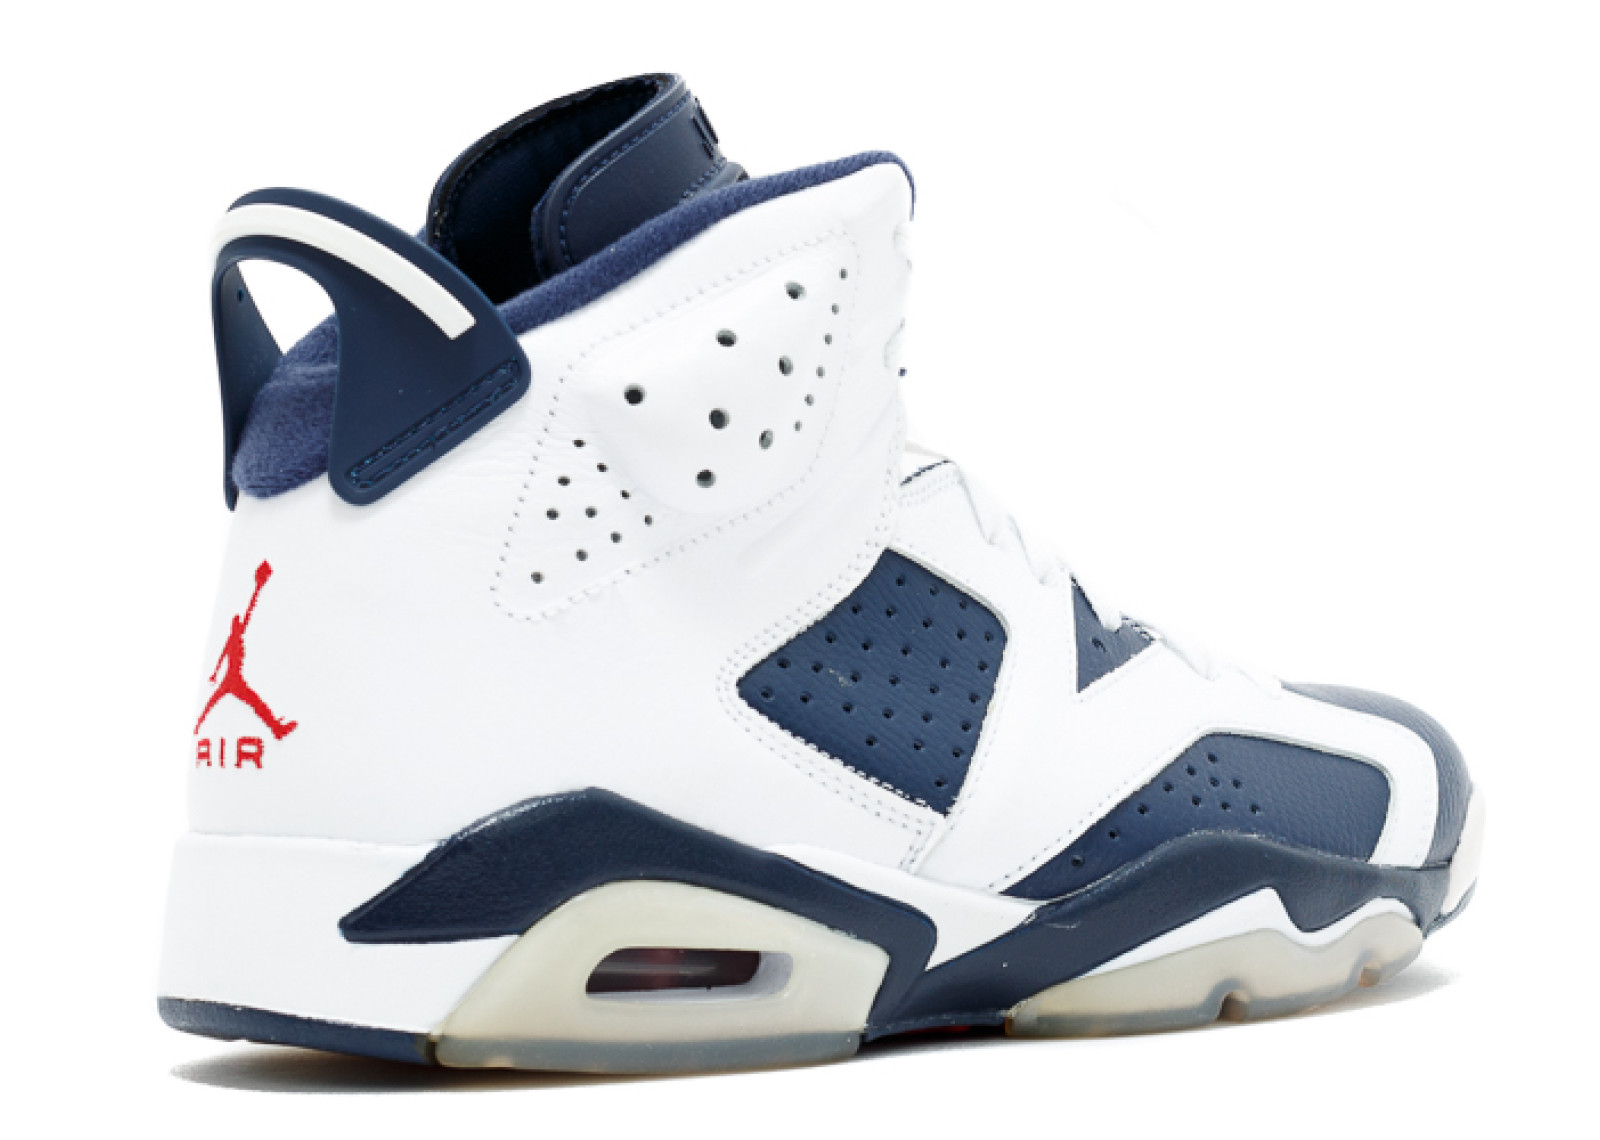 3be447feac73ce Air Jordan 6 Retro  Olympic 2012 Release  - 384664-130 - Size 9.5